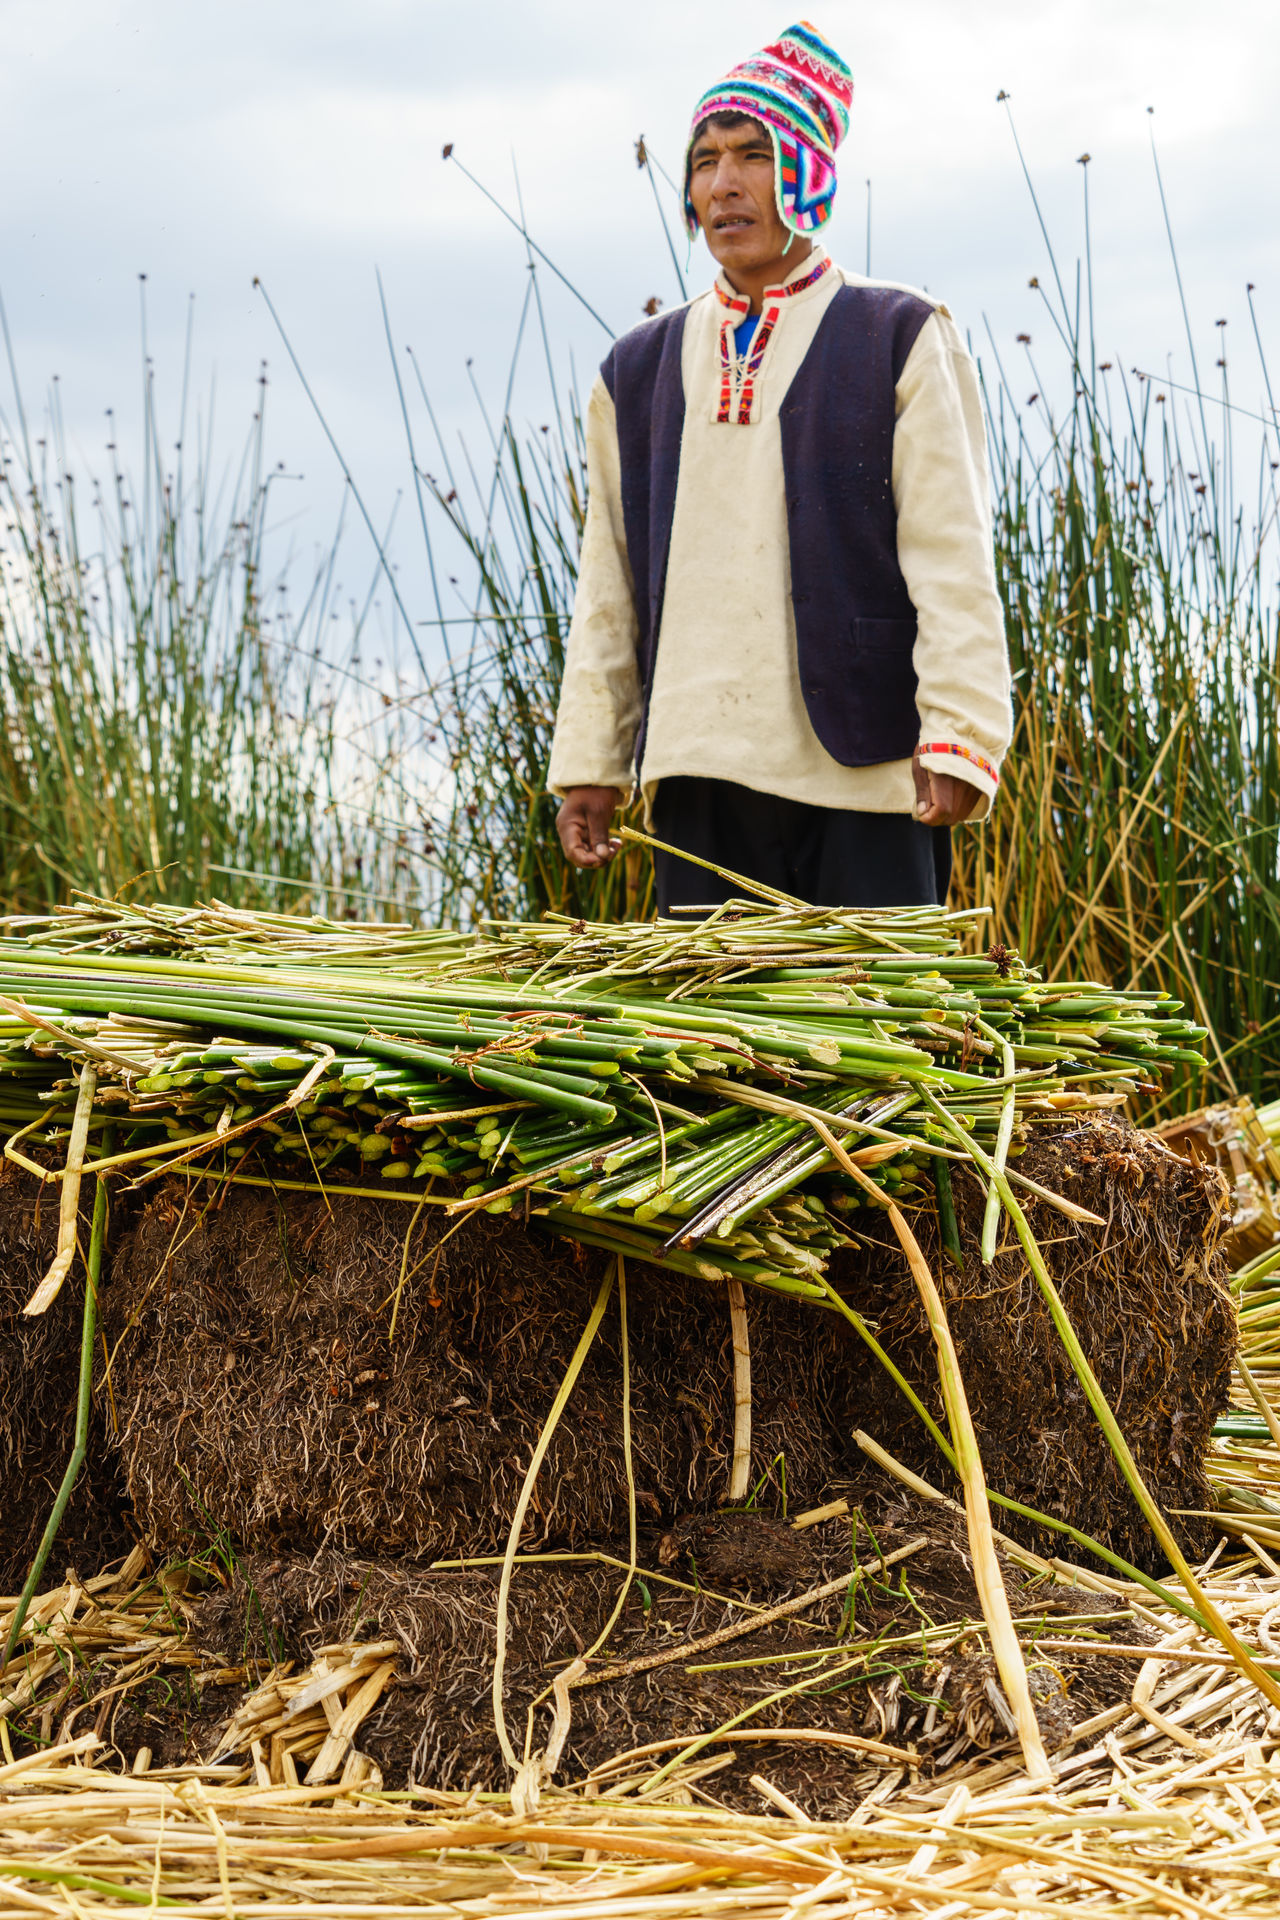 Altitude America Anden Art Children Fisherman Floating Food Island Lake Loca Men People Peru Puno South Titicaca Traditional Traveling Uros Uros Island Village Women